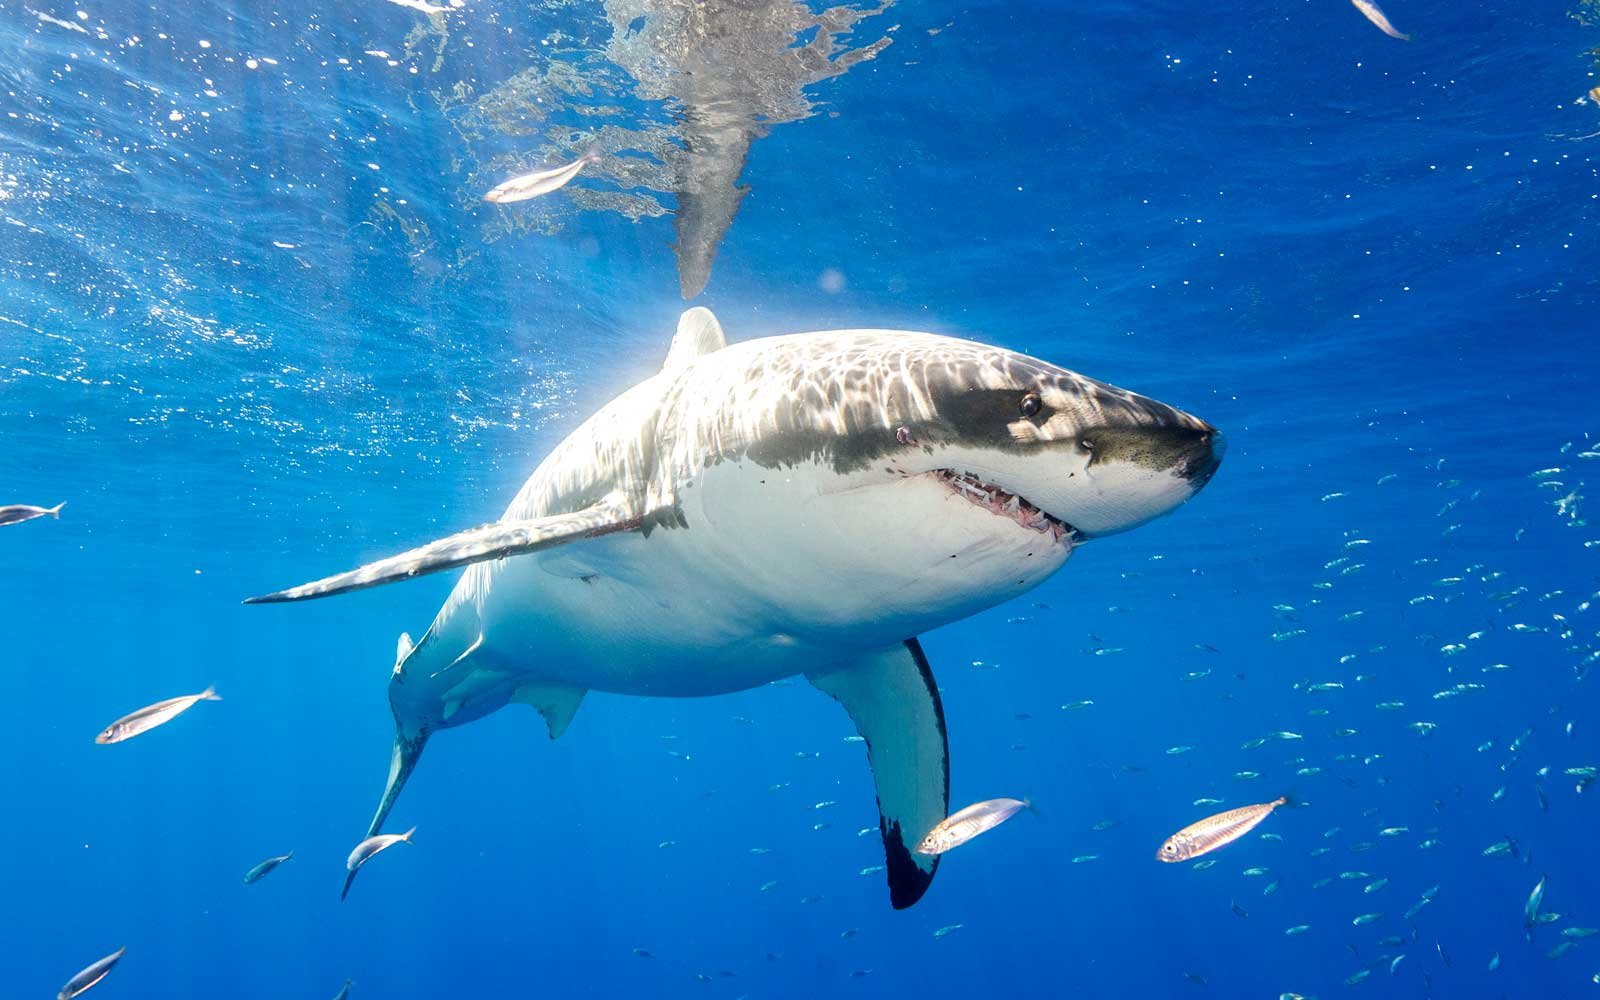 Watch great white mega shark bite and rattle a diving cage — with divers inside